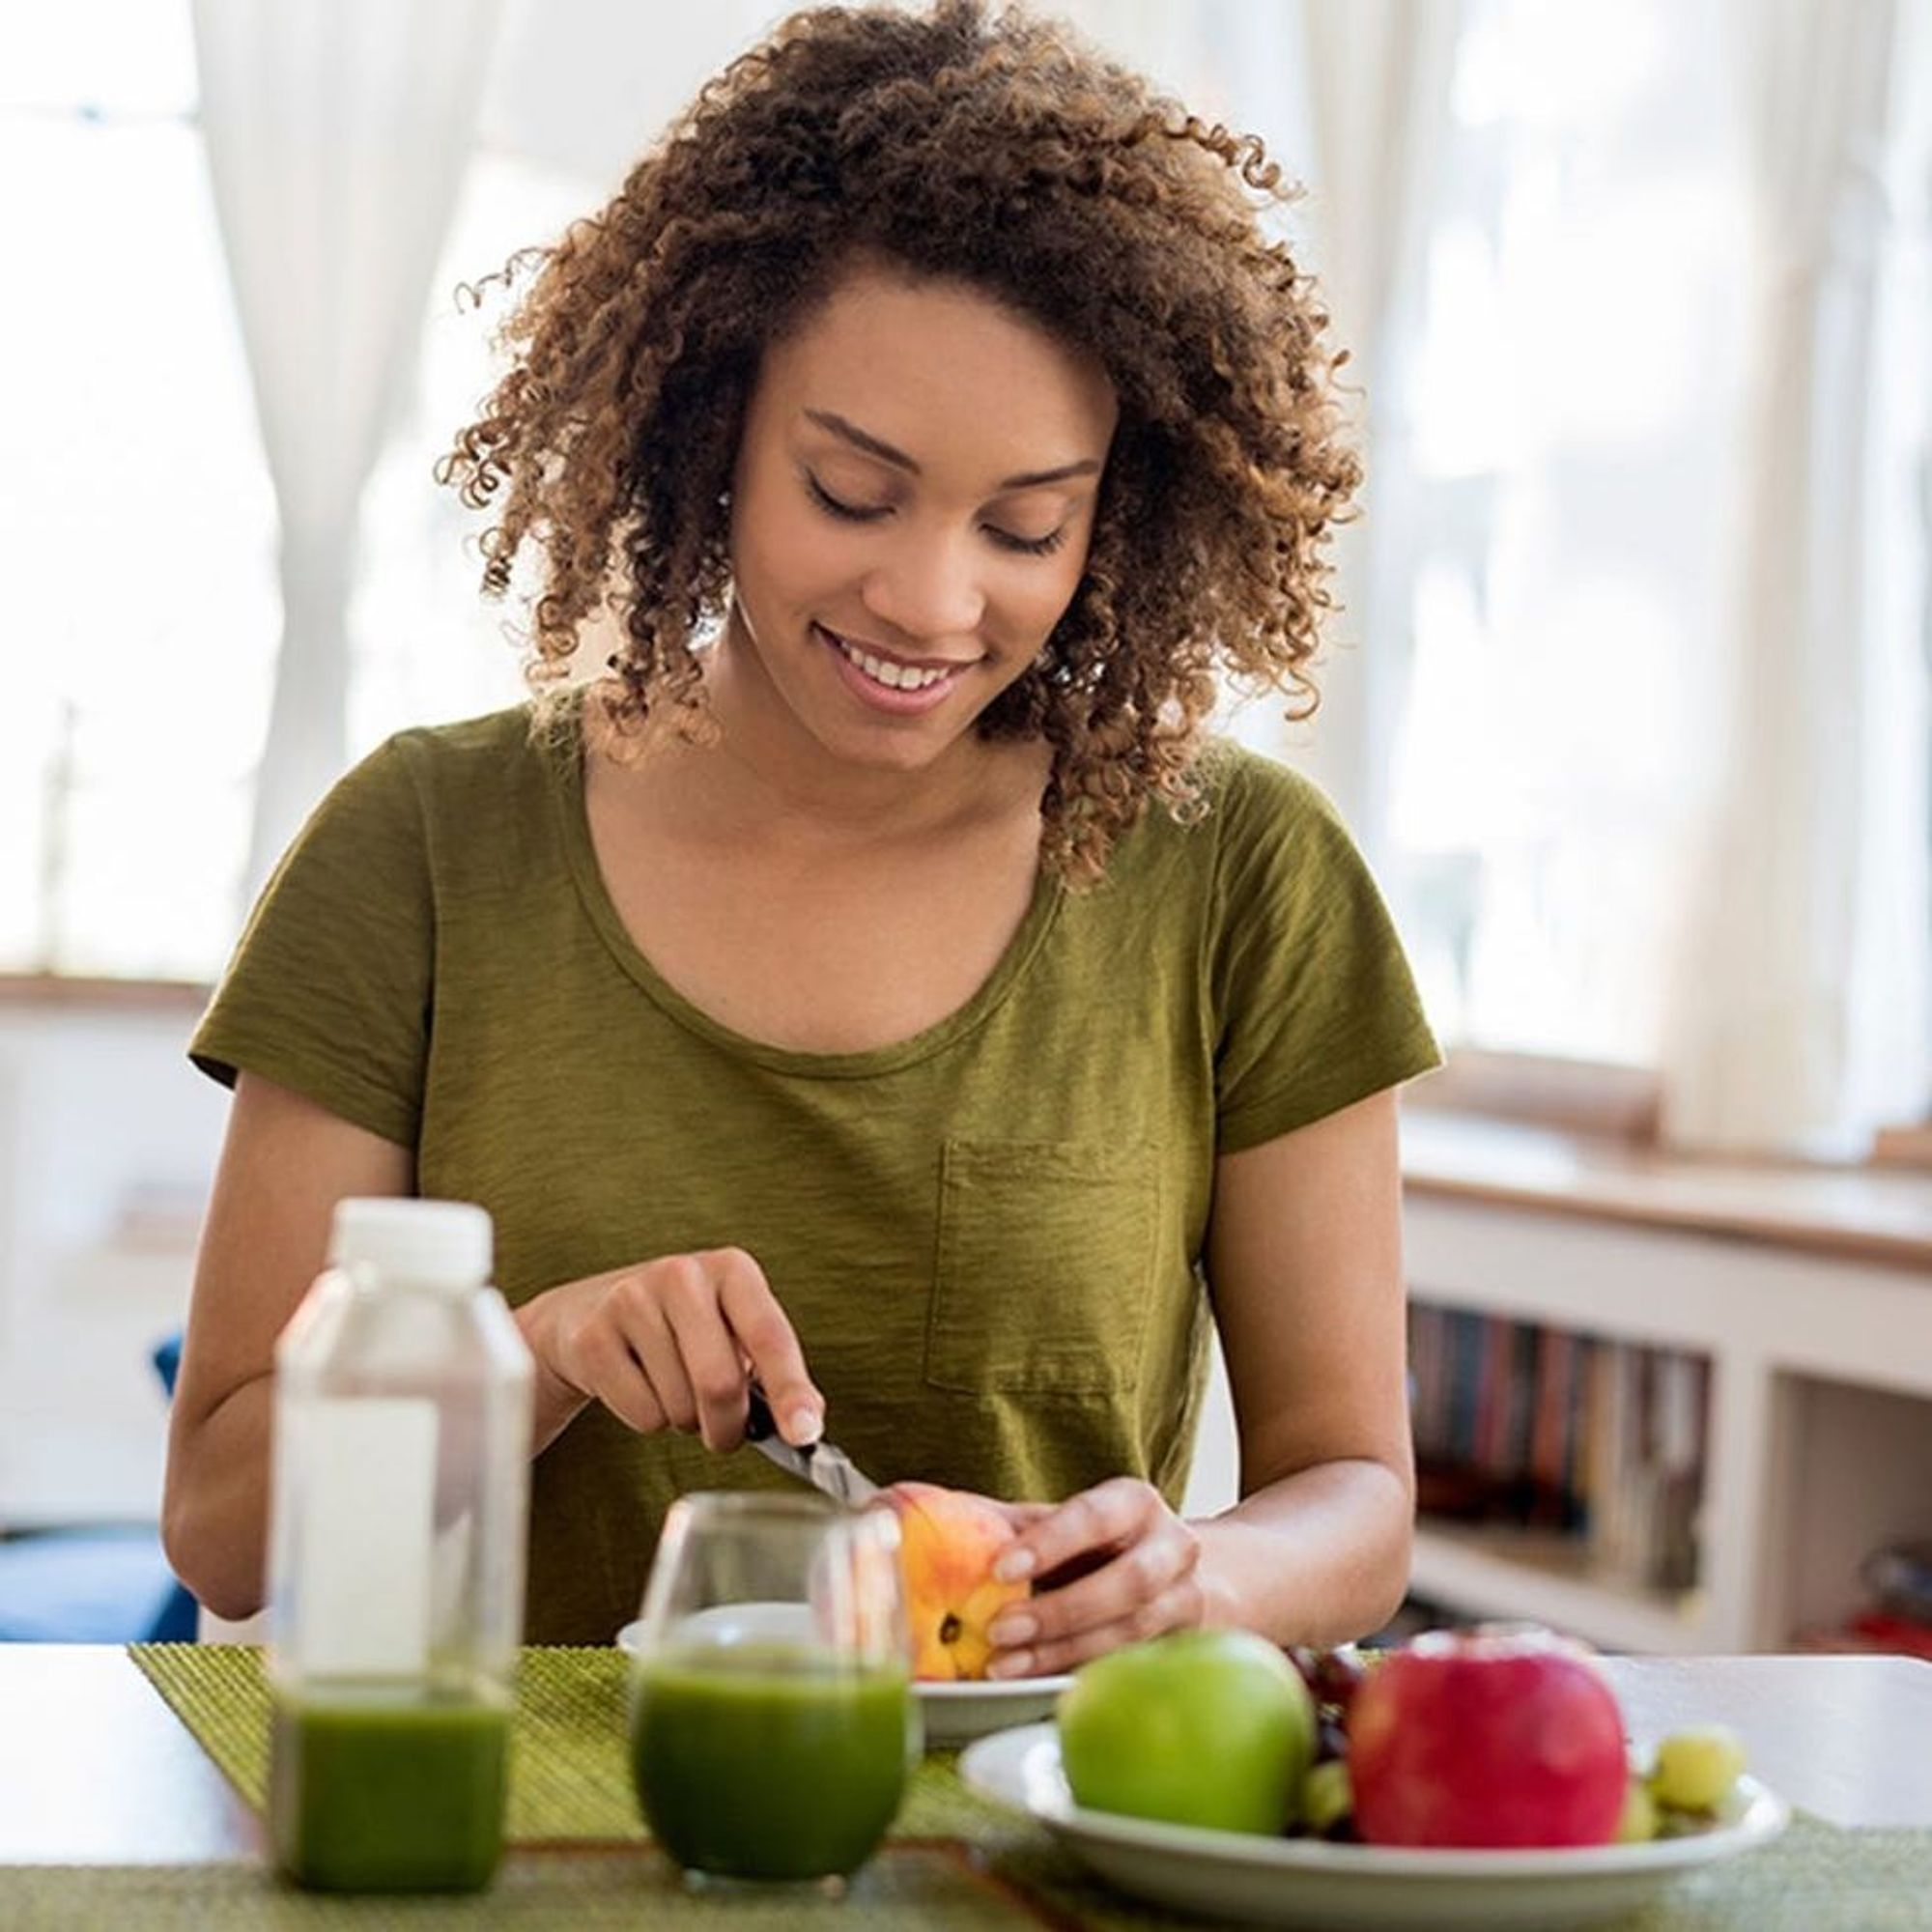 Easy Ways to Make Your Diet More Heart-Healthy